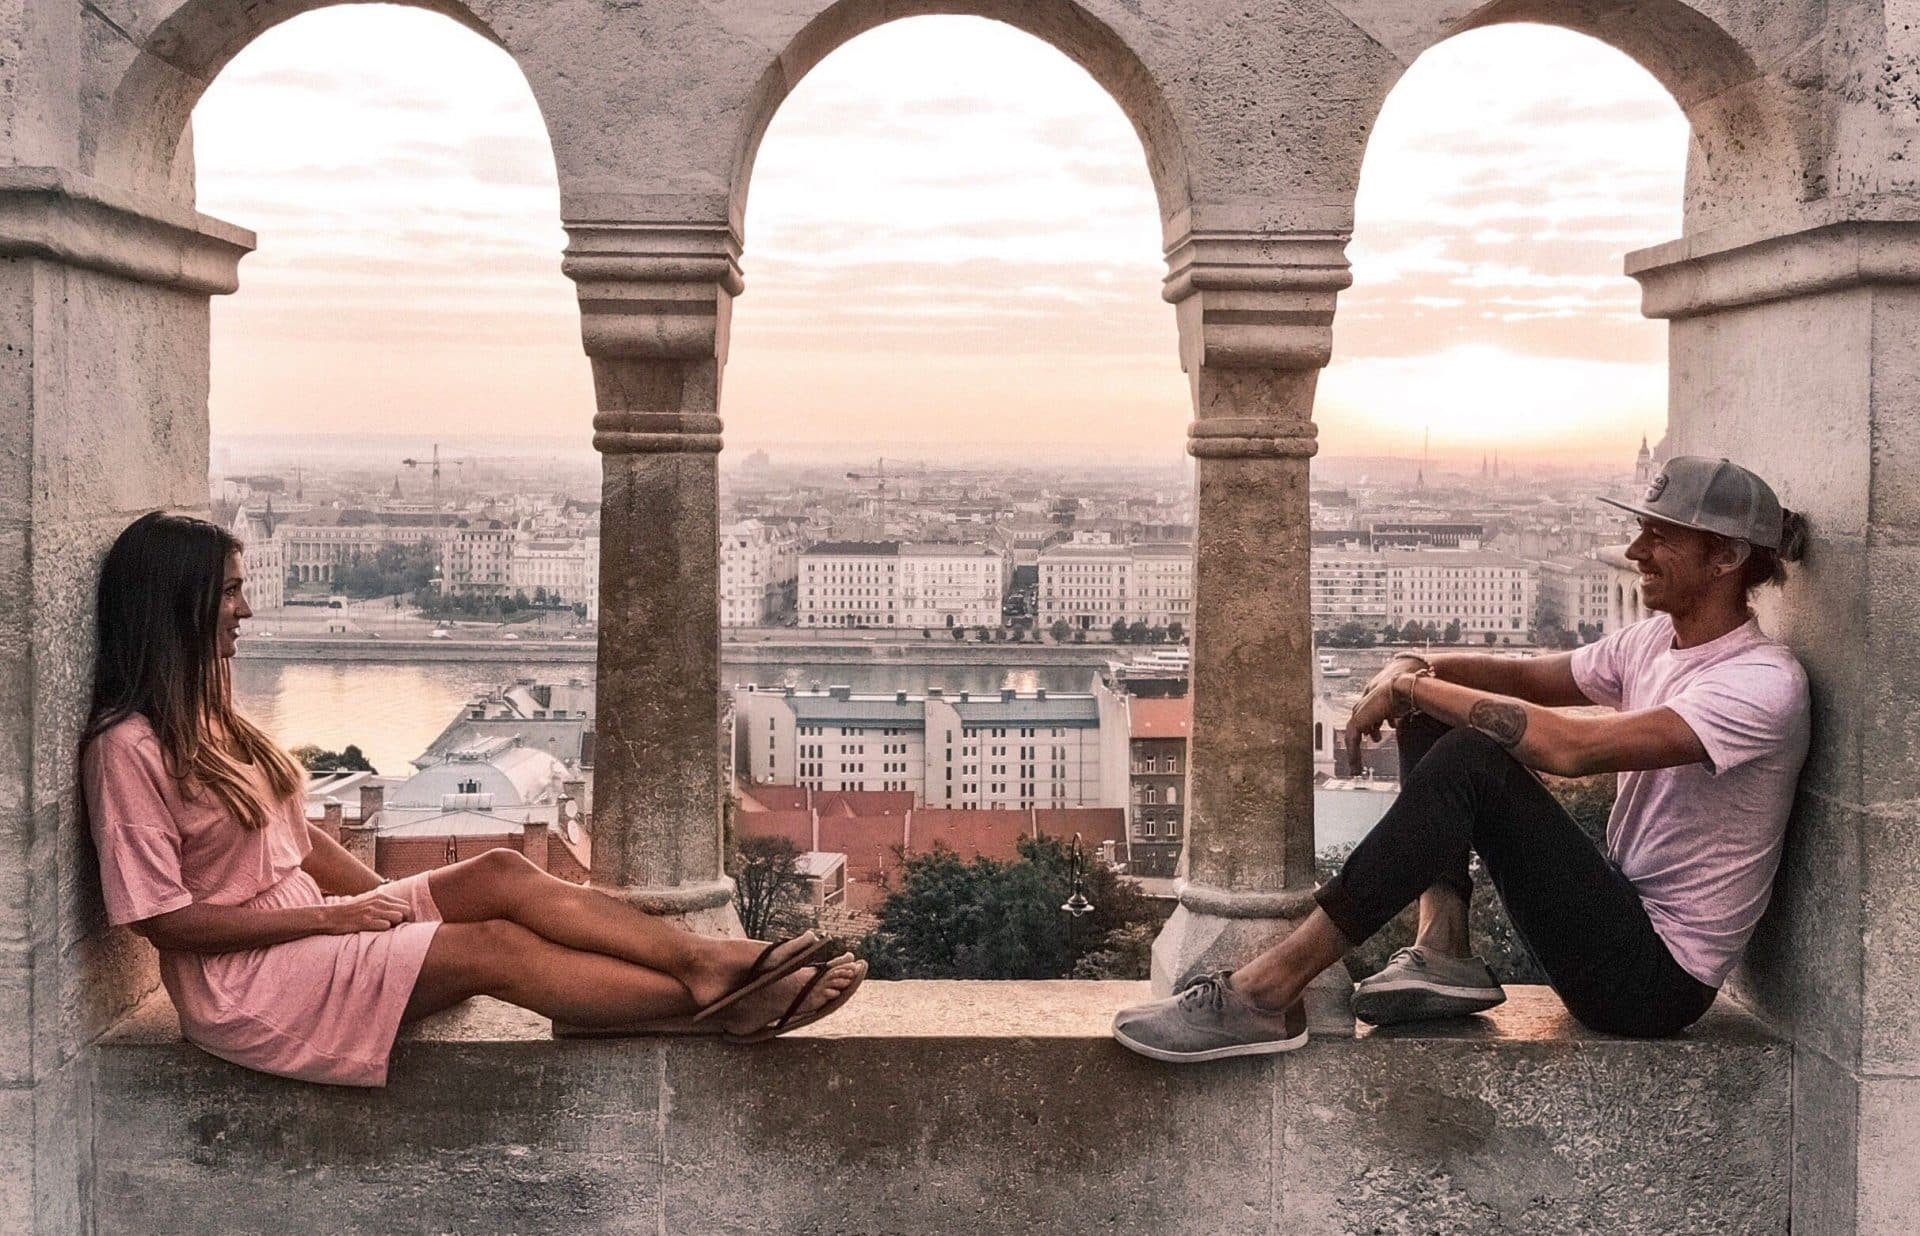 Budapest Sexiest City in Europe